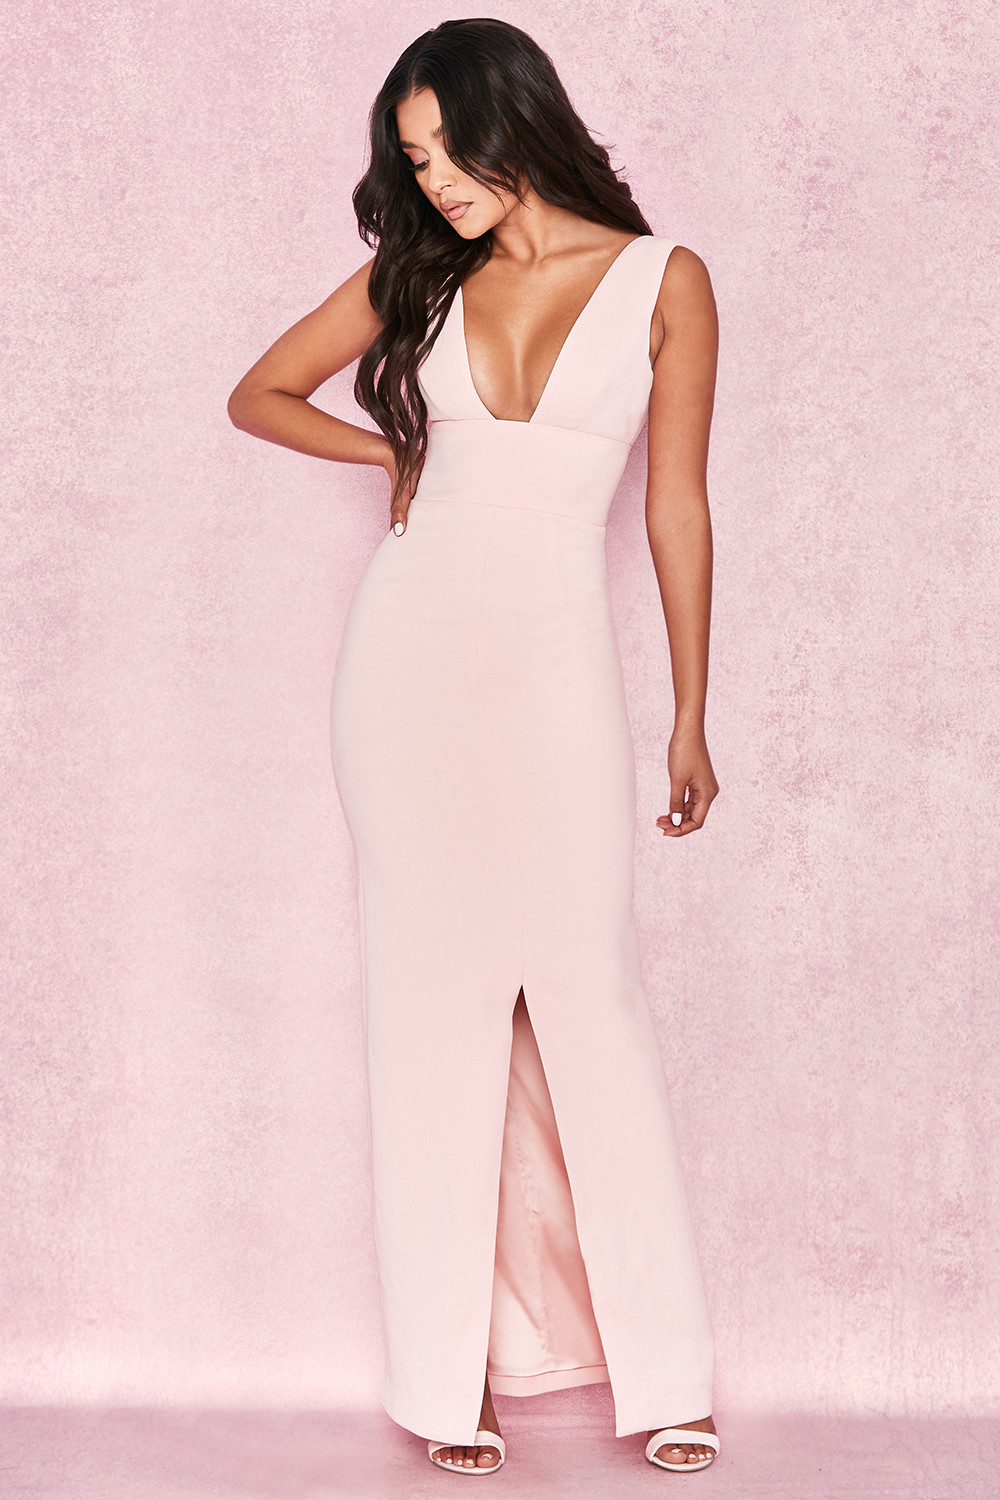 be606a6c3ca Narelle Baby Pink Plunge Neck Maxi Dress. View larger image. View larger  image. View larger image. View larger image